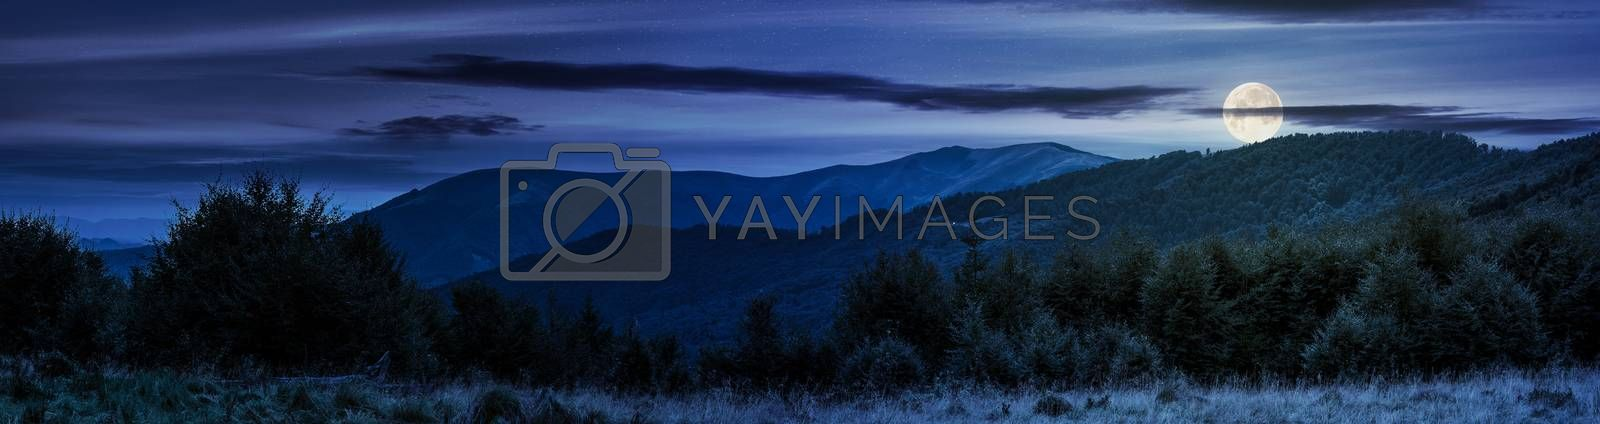 panorama of Carpathian mountains at night in full moon light. beautiful landscape with forested hills and Apetska mountain in the distance.